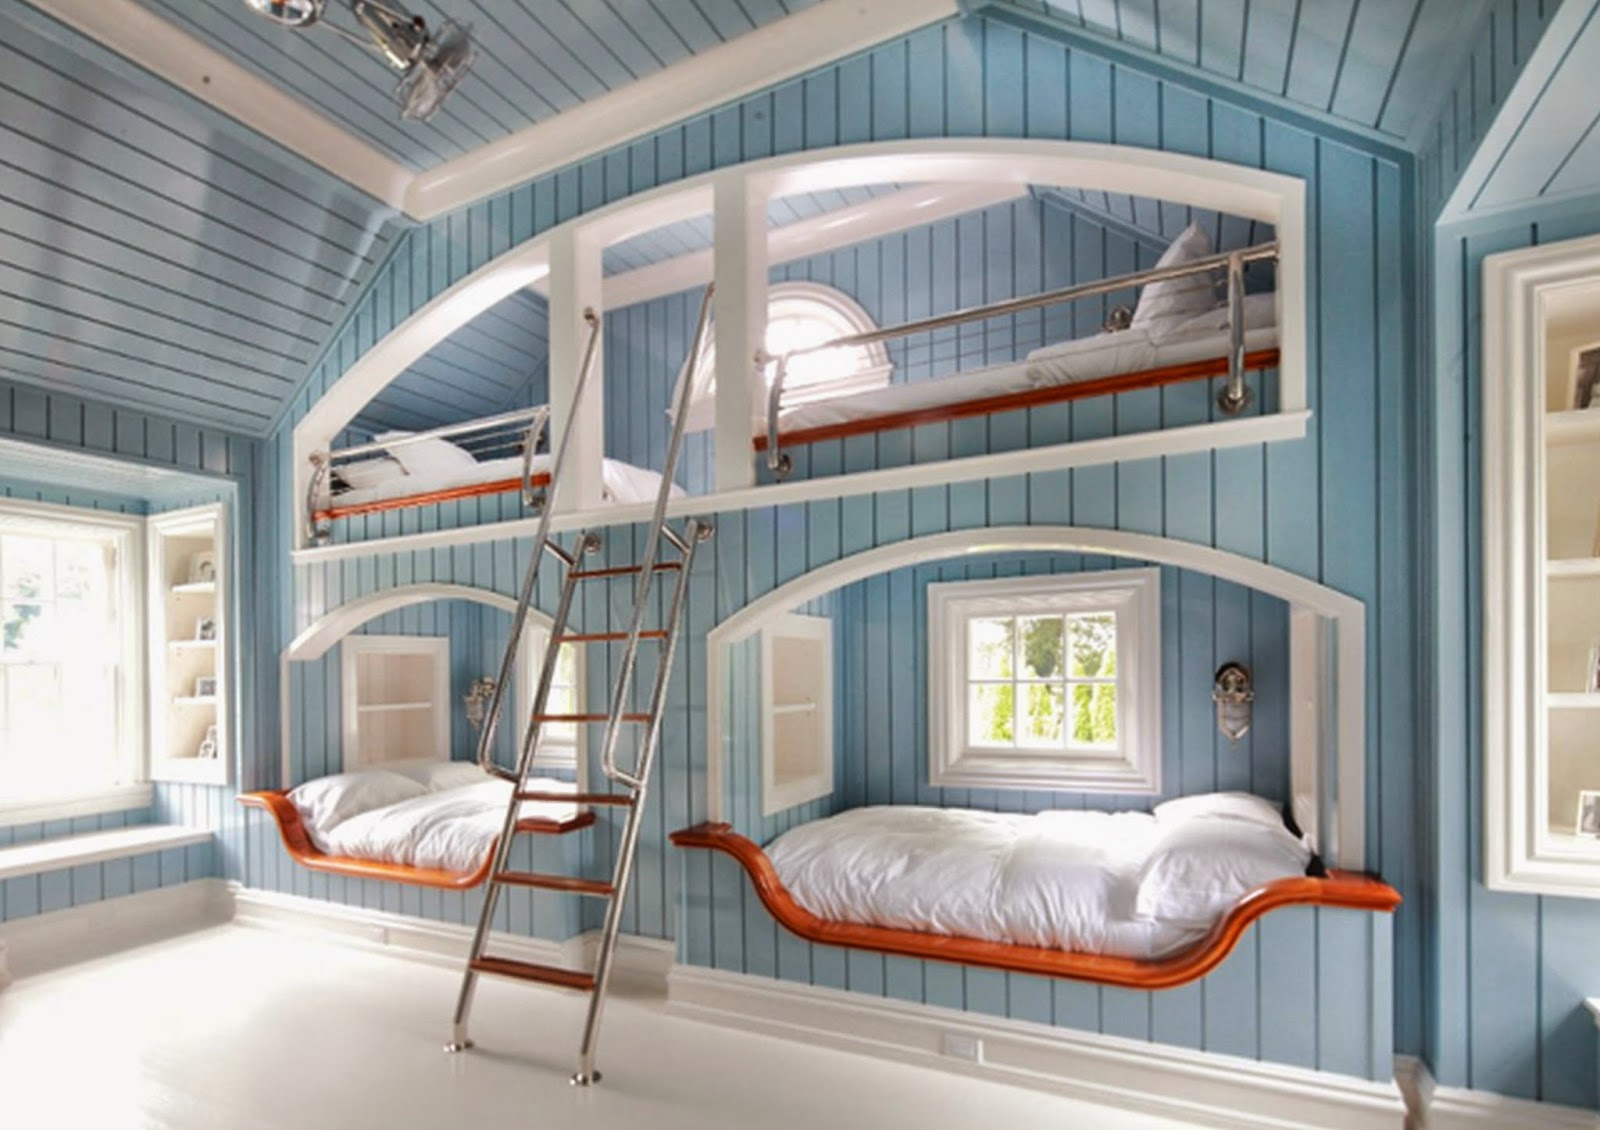 Farry island girls bedroom ideas 2015 - Unique girls bedroom images and idea ...